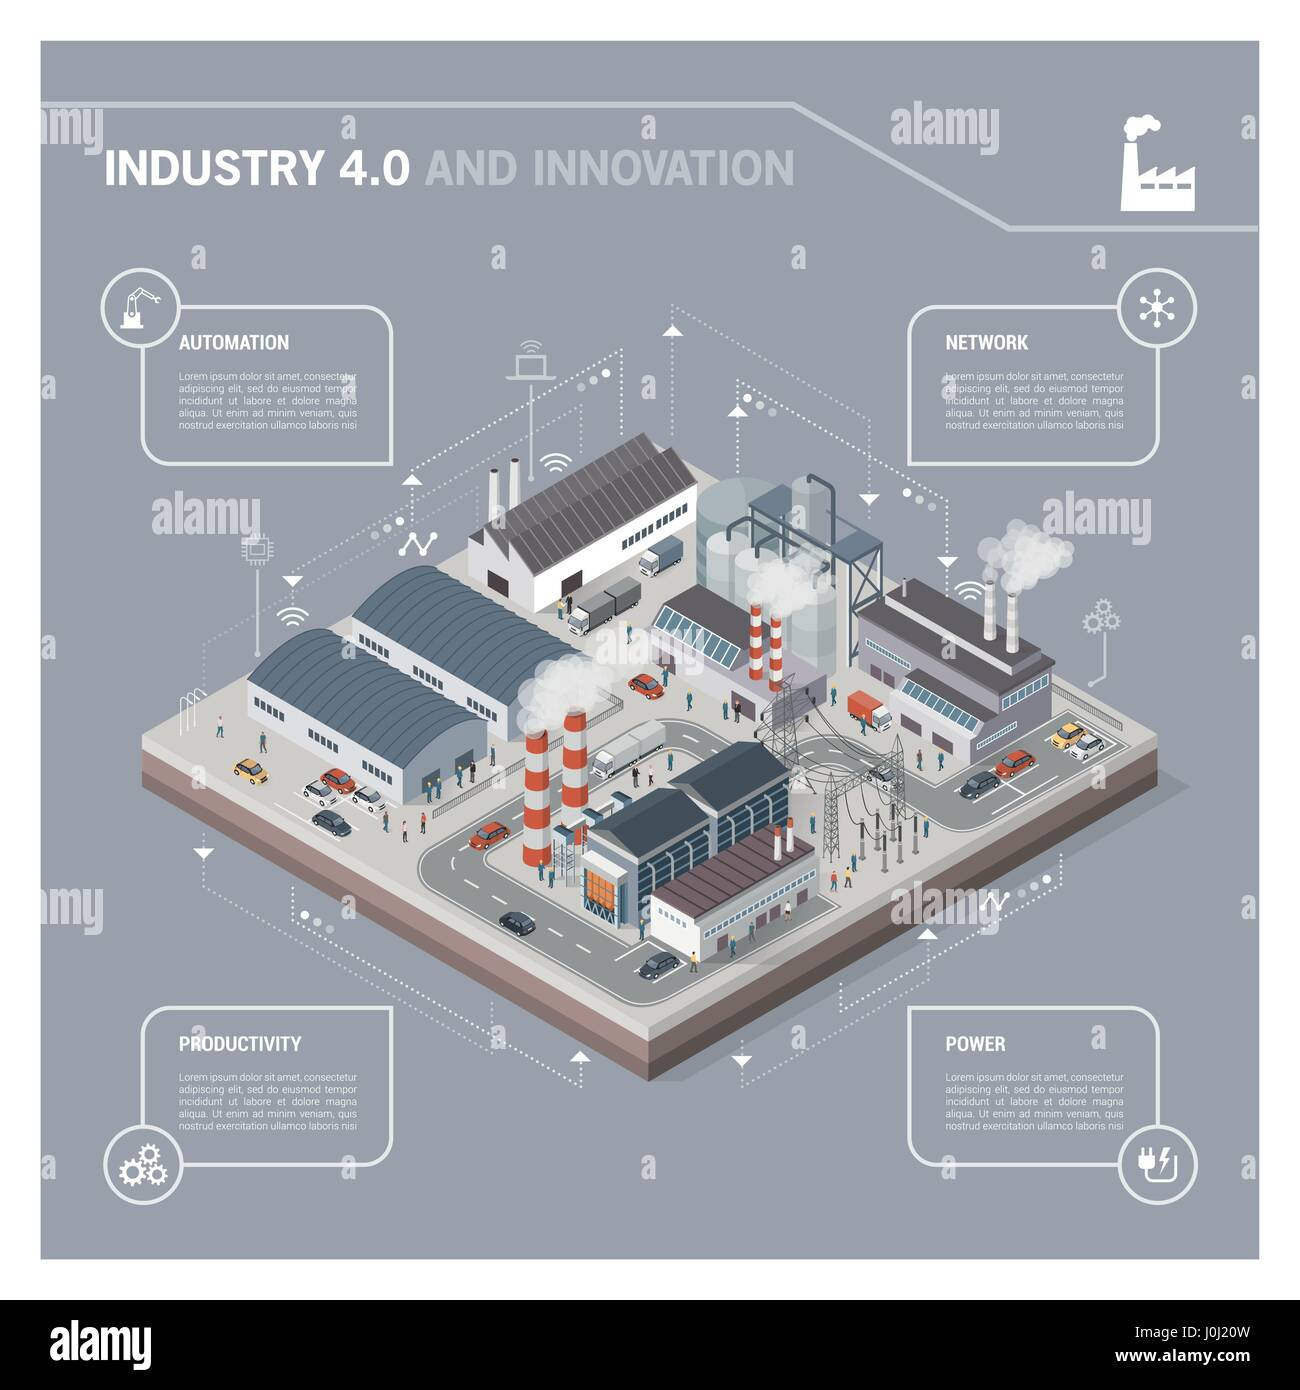 Isometric contemporary industrial park with factories, power plant, workers and transport: industry 4.0 infographic - Stock Image